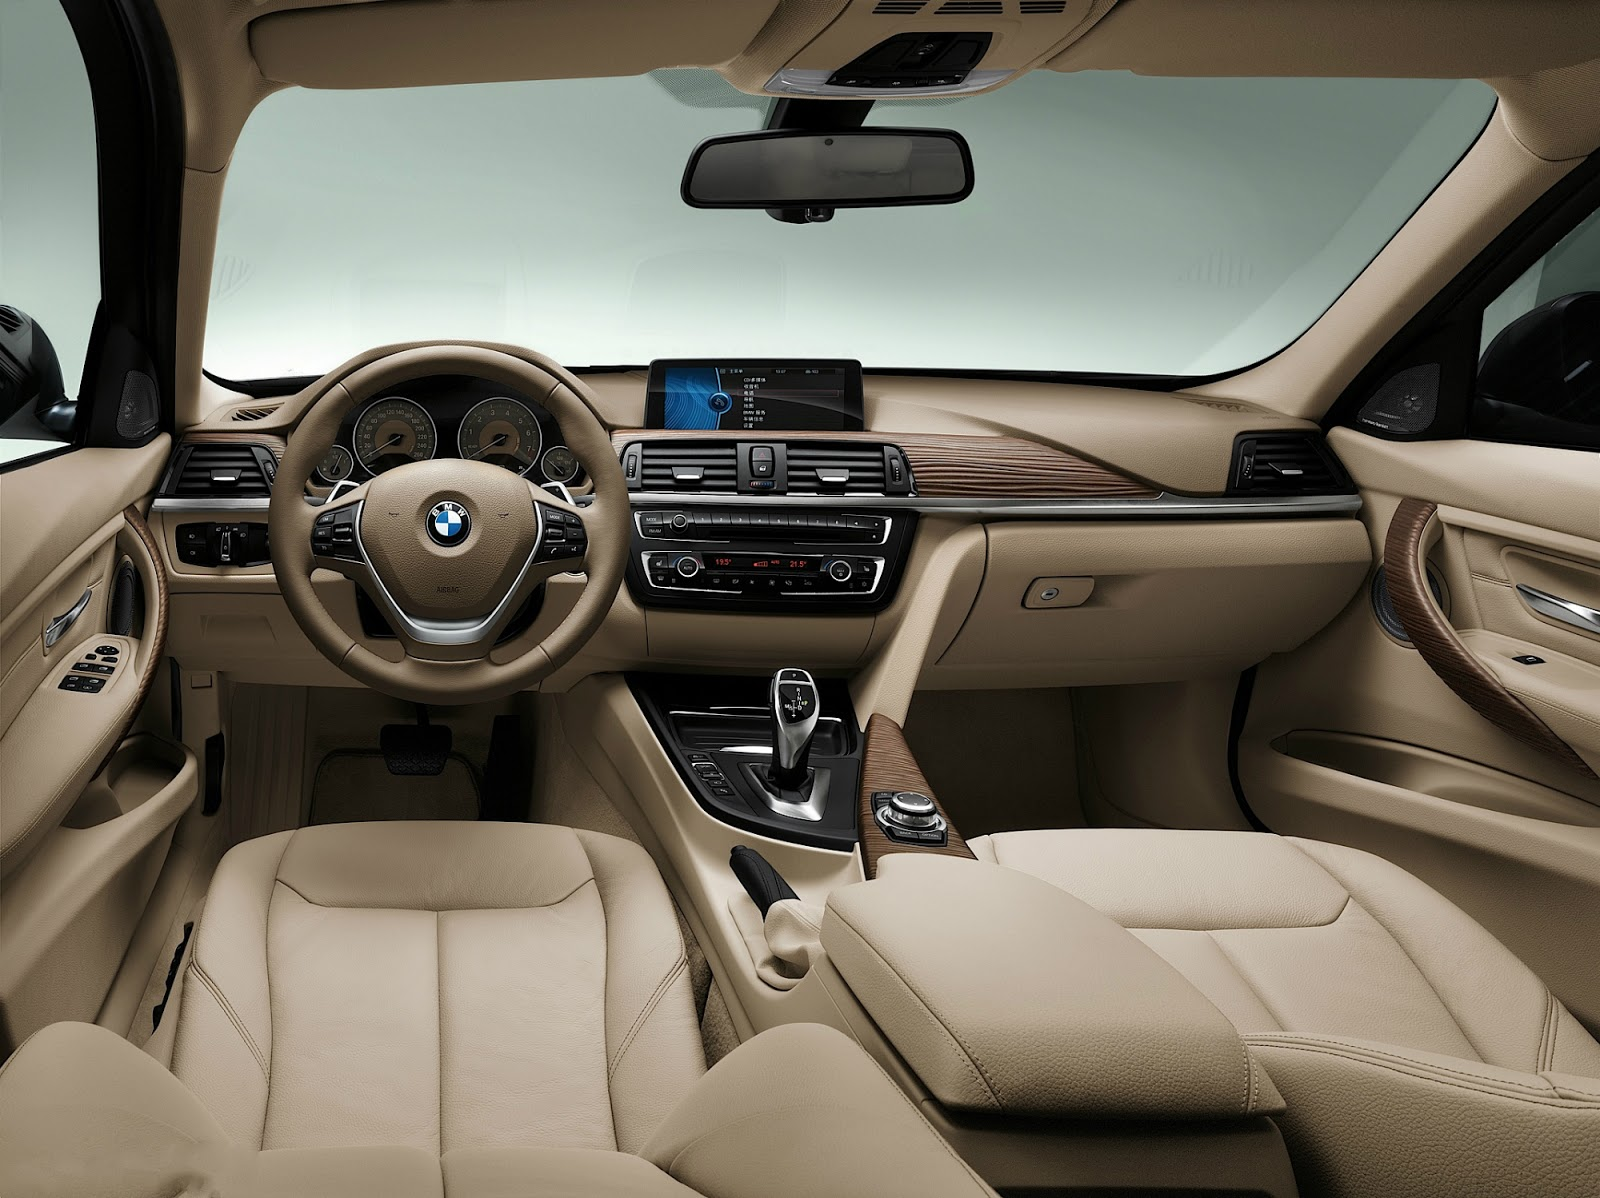 2013 bmw 320i interior male models picture - 2013 Bmw 3 Series Long Wheelbase Interior